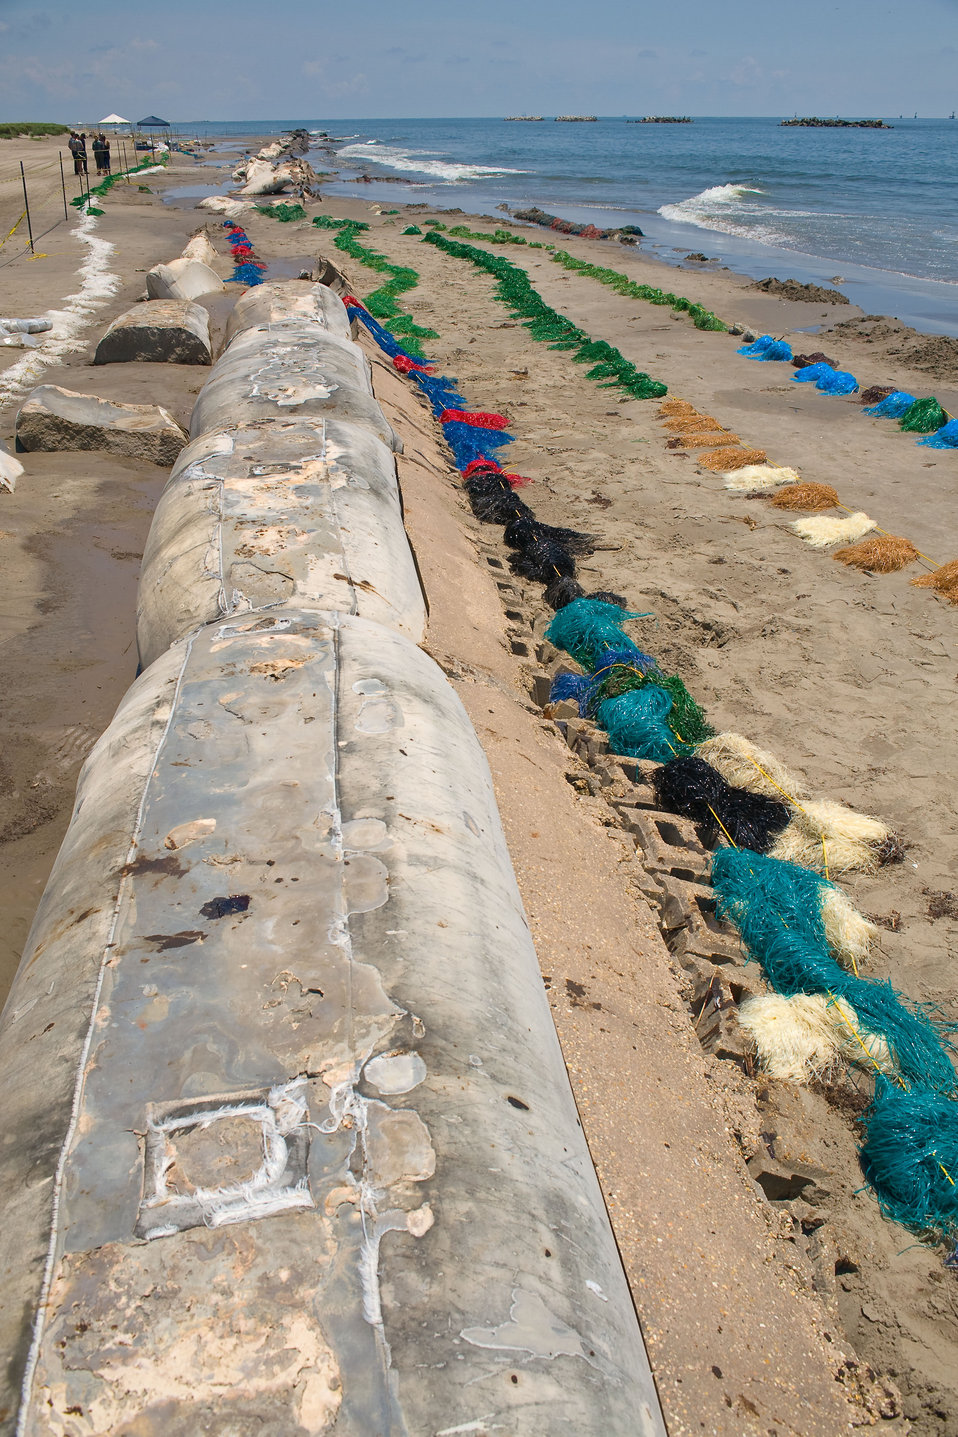 June 1, Beaches lined with absorbent oil material